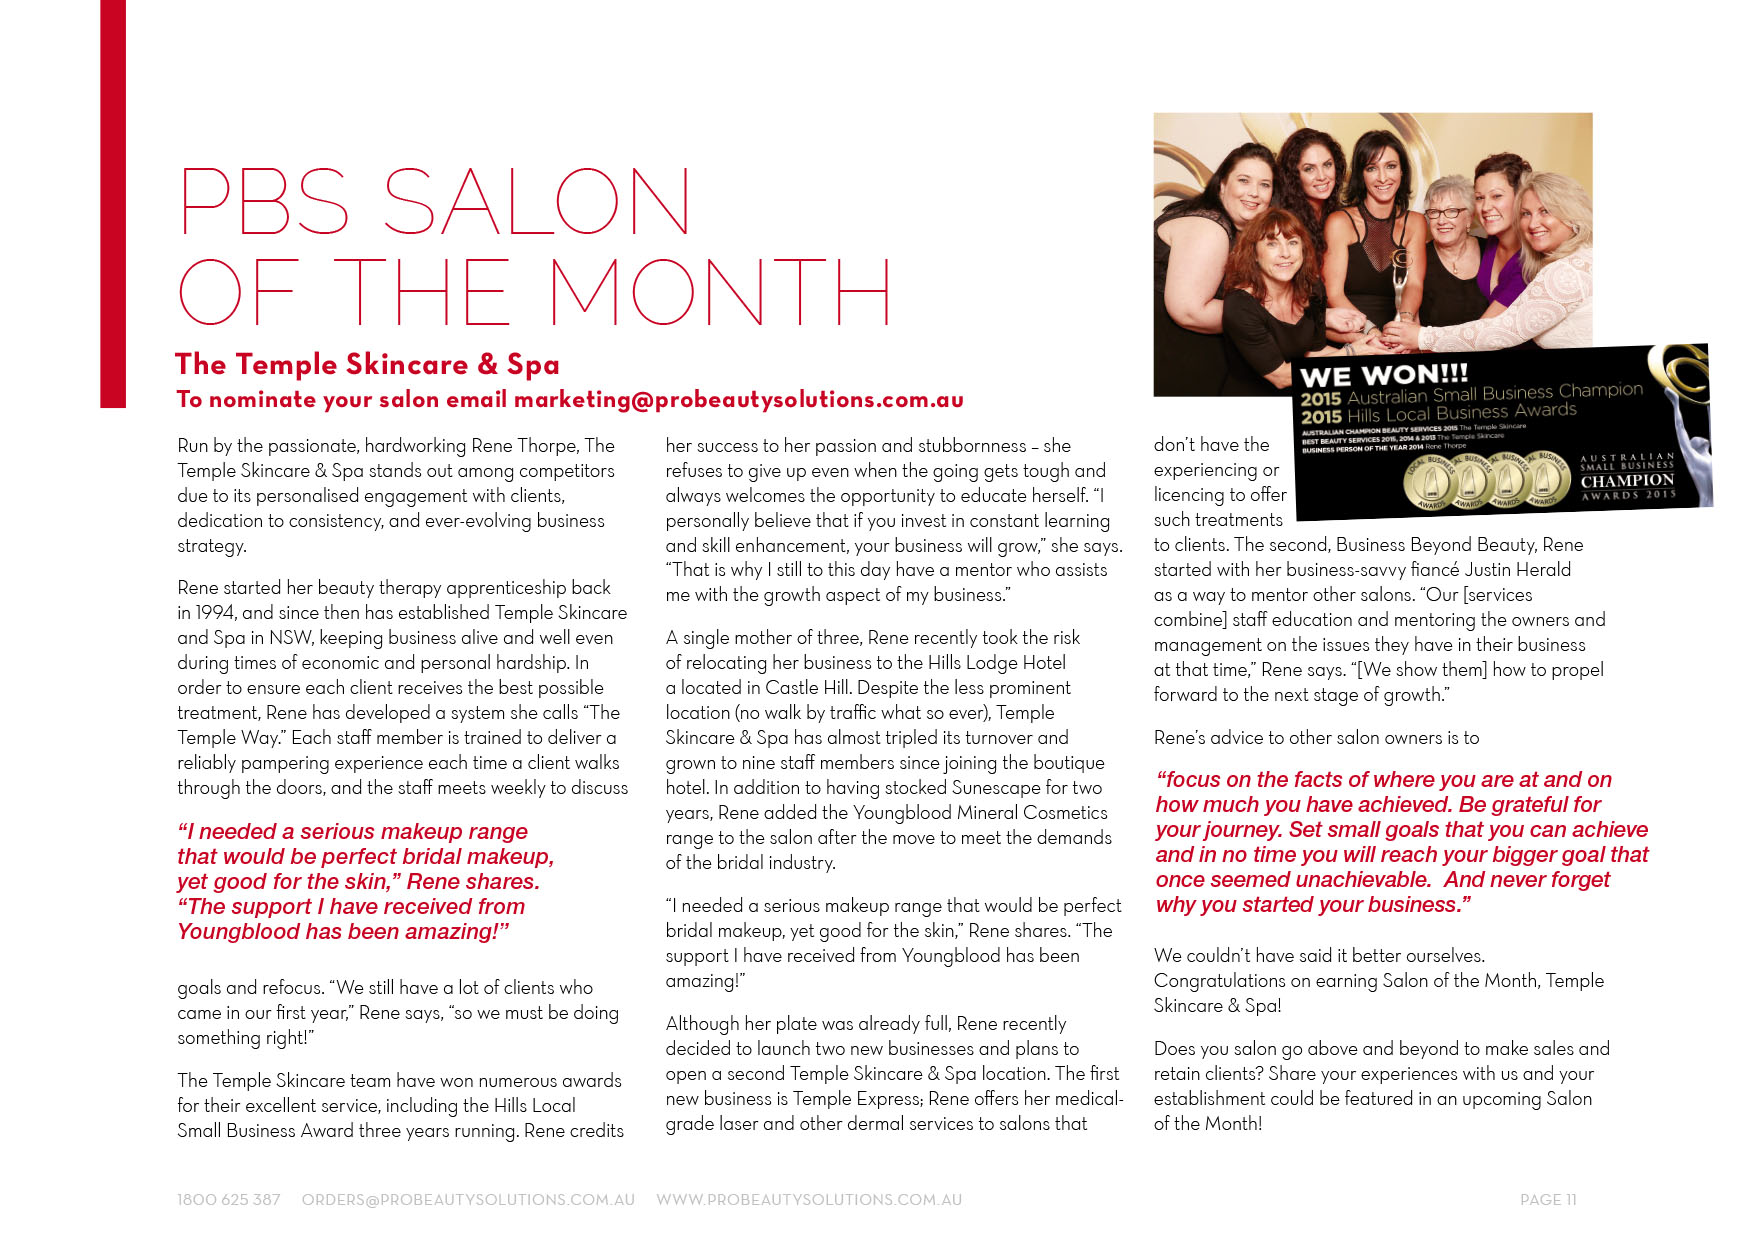 Temple Skincare voted salon of the month